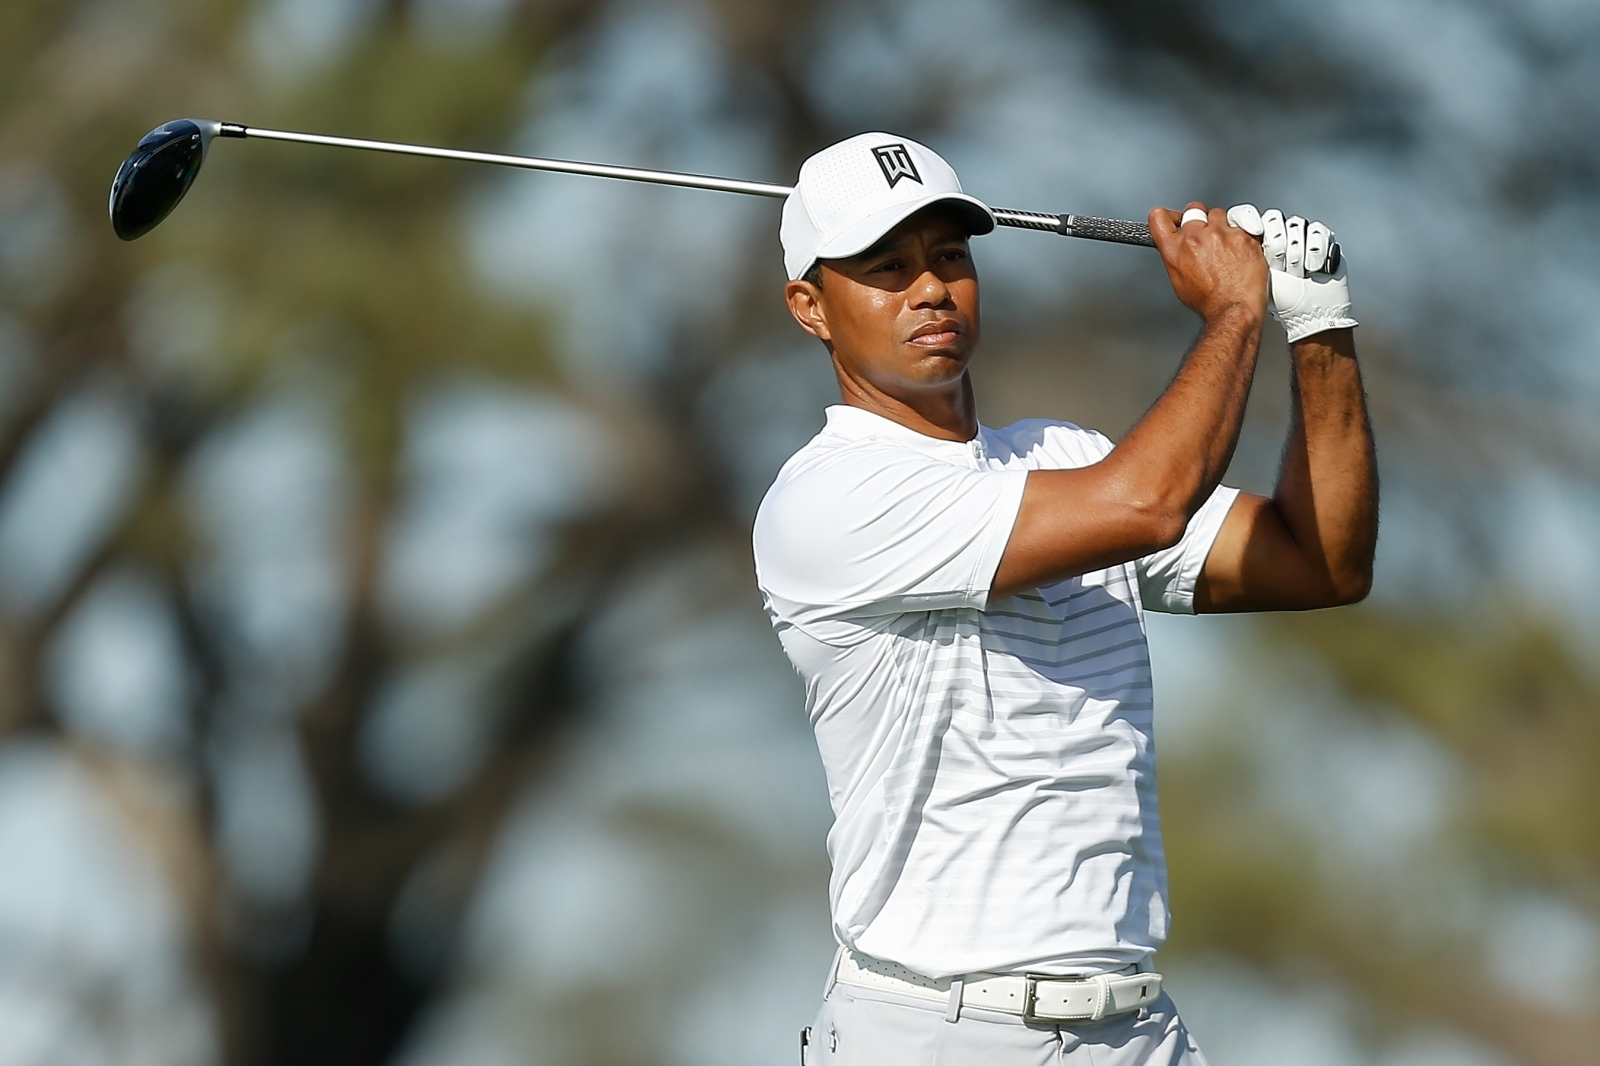 Tiger Woods issues brutal slapdown of rivals at Genesis Open